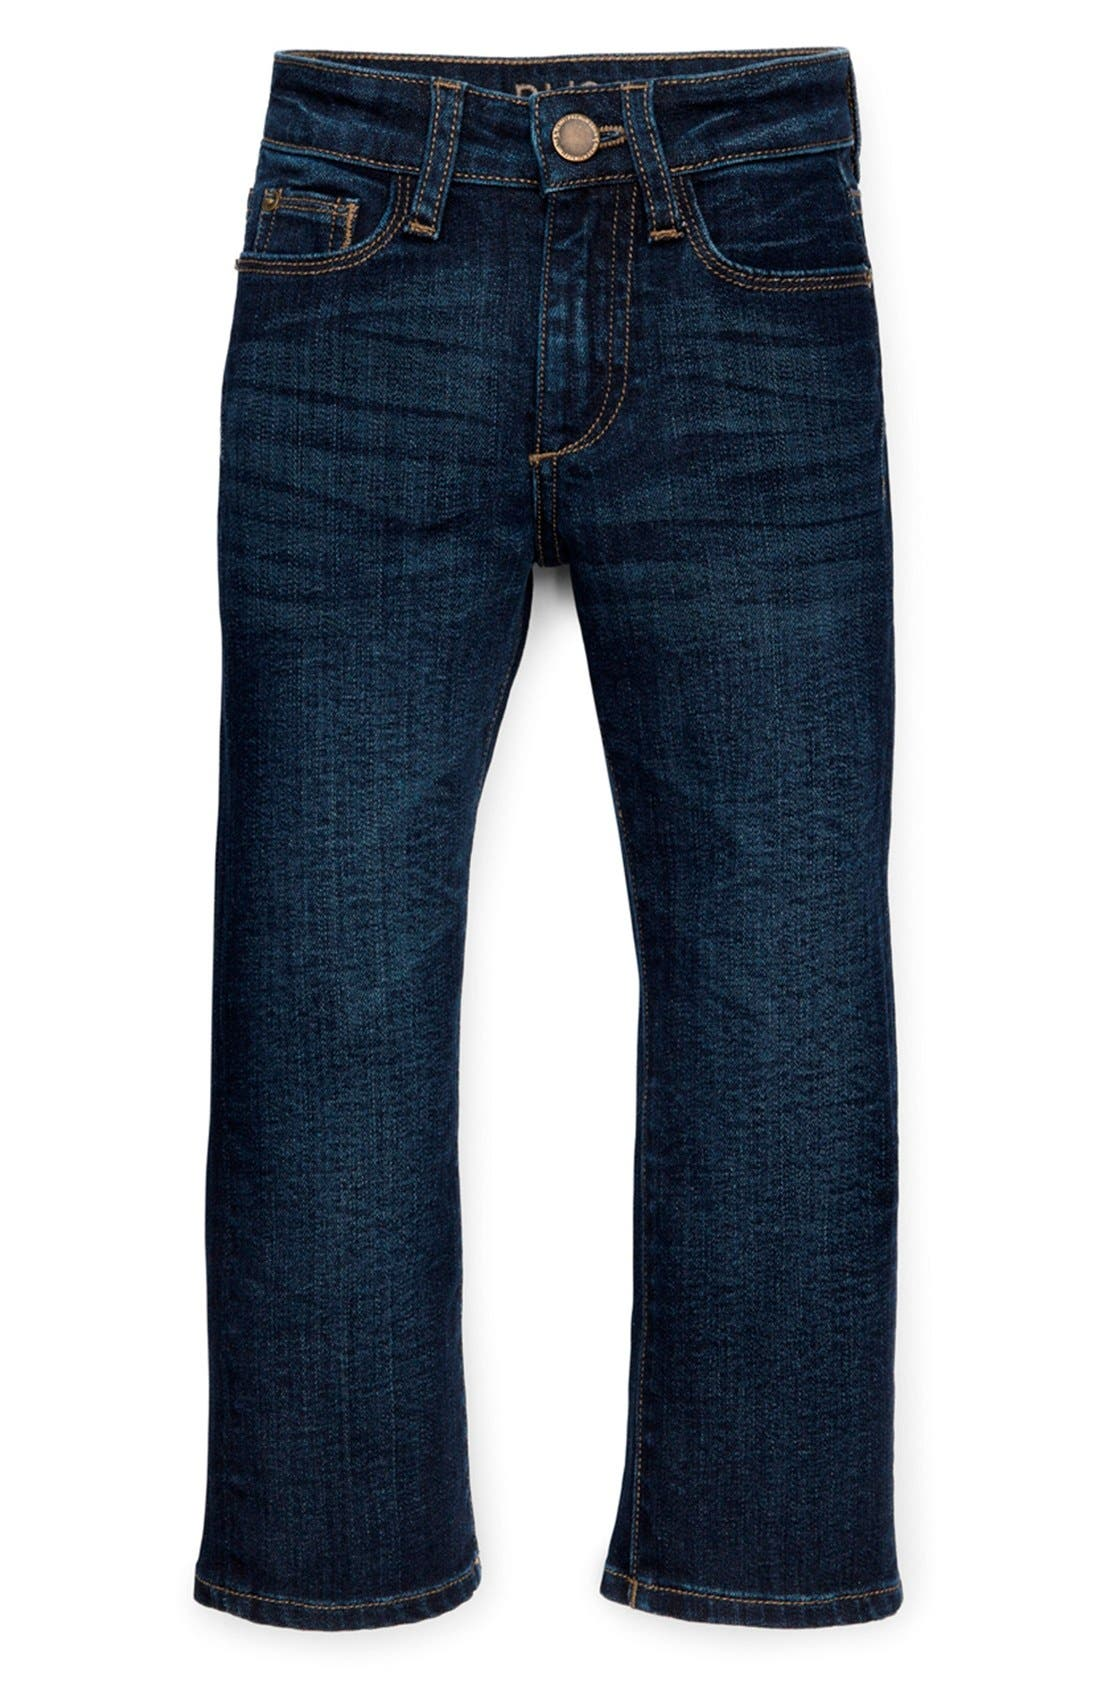 Dl1961 Jeans Womens Mens Clothing Nordstrom